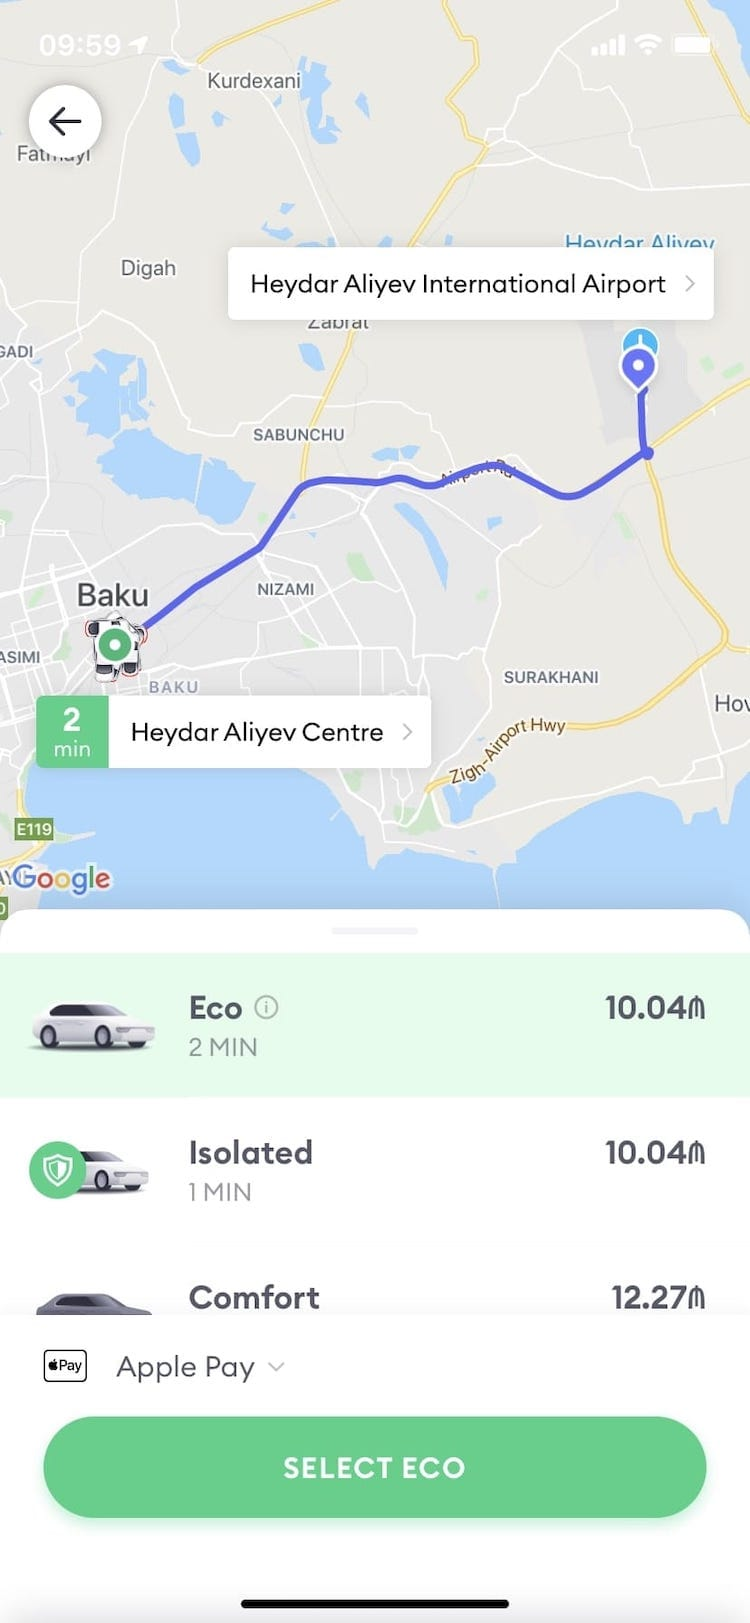 Baku Taxi Tips: Taking a Taxi in Baku with 2 Useful Apps